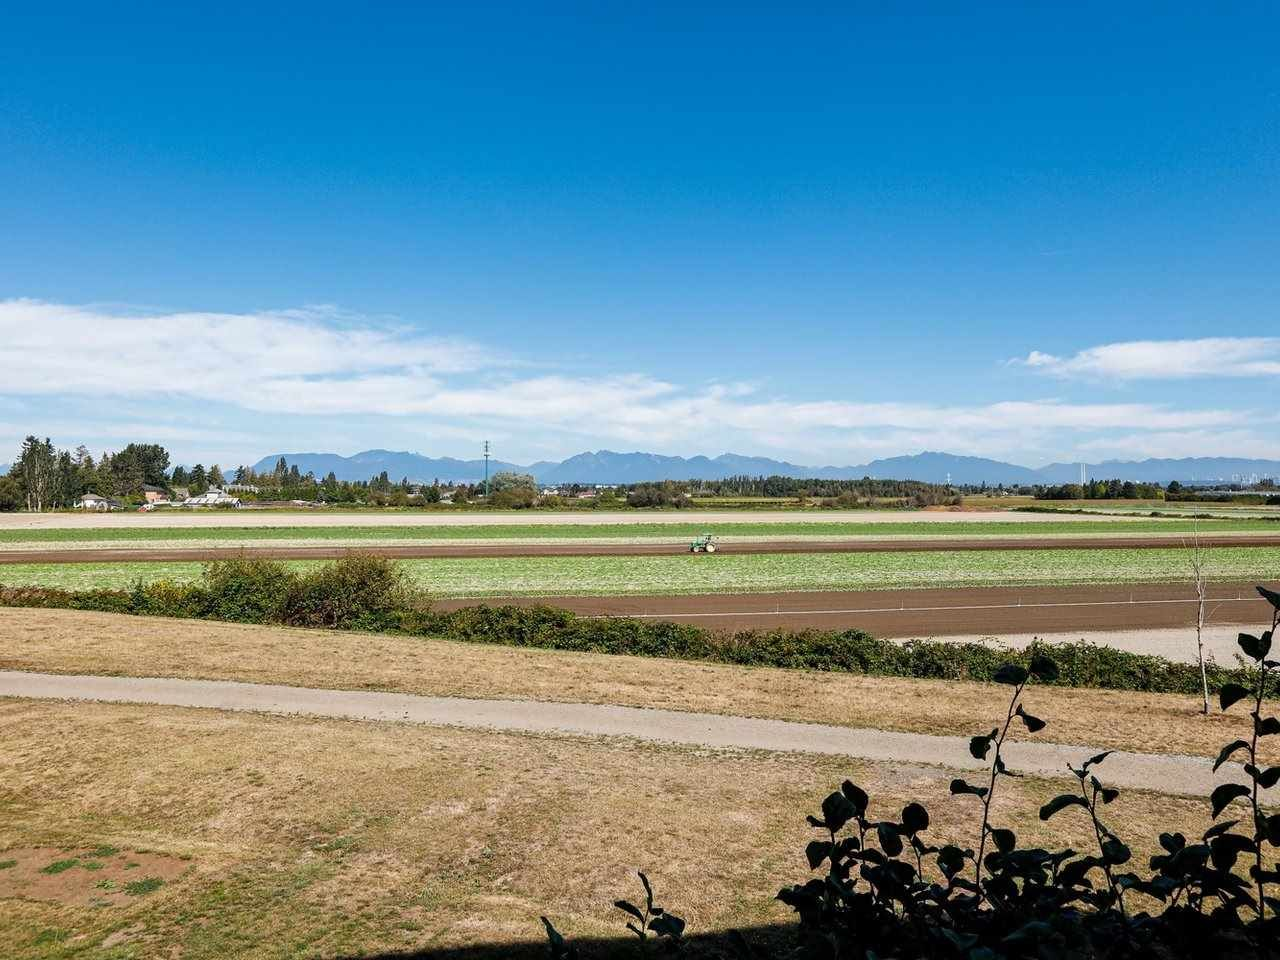 """Main Photo: 204 6233 LONDON Road in Richmond: Steveston South Condo for sale in """"LONDON STATION 1"""" : MLS®# R2404528"""